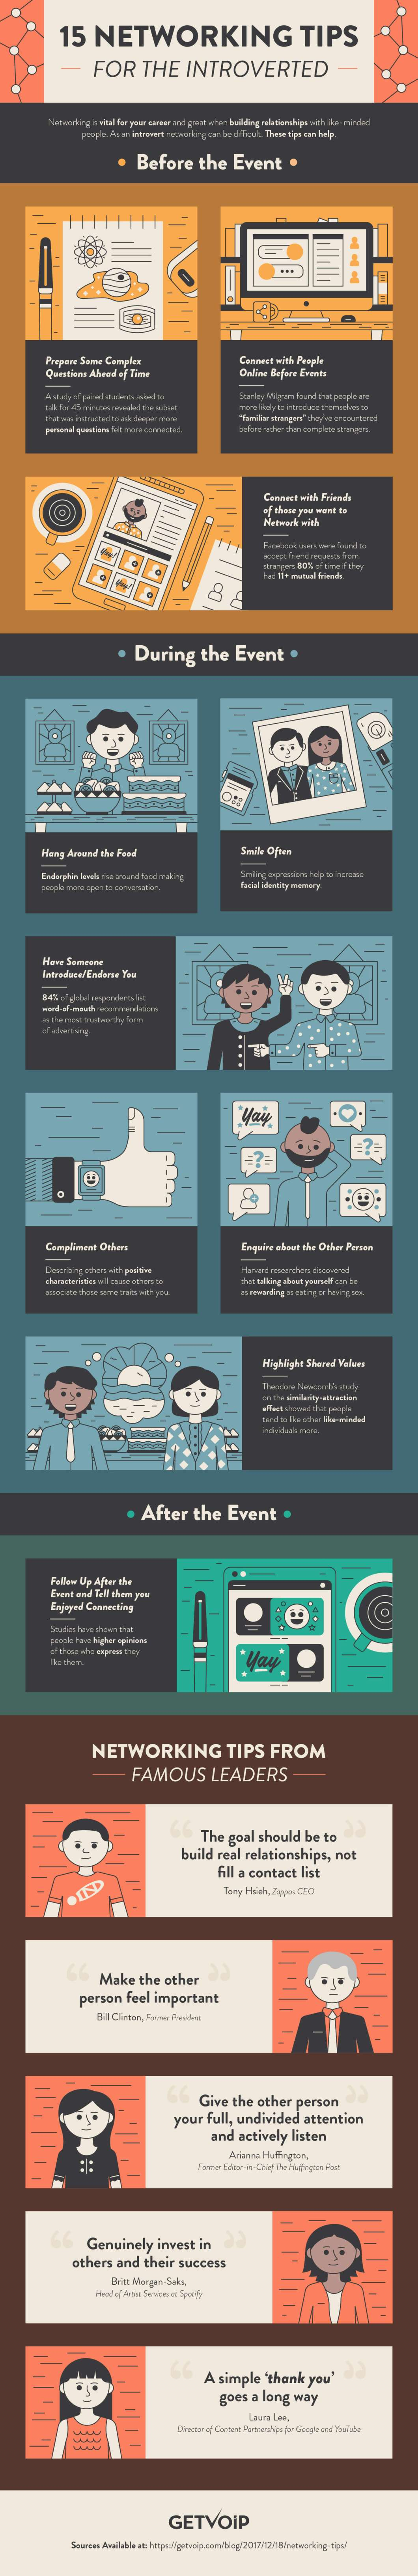 The Introvert's Guide to Networking: 15 Valuable Tips - Infographic